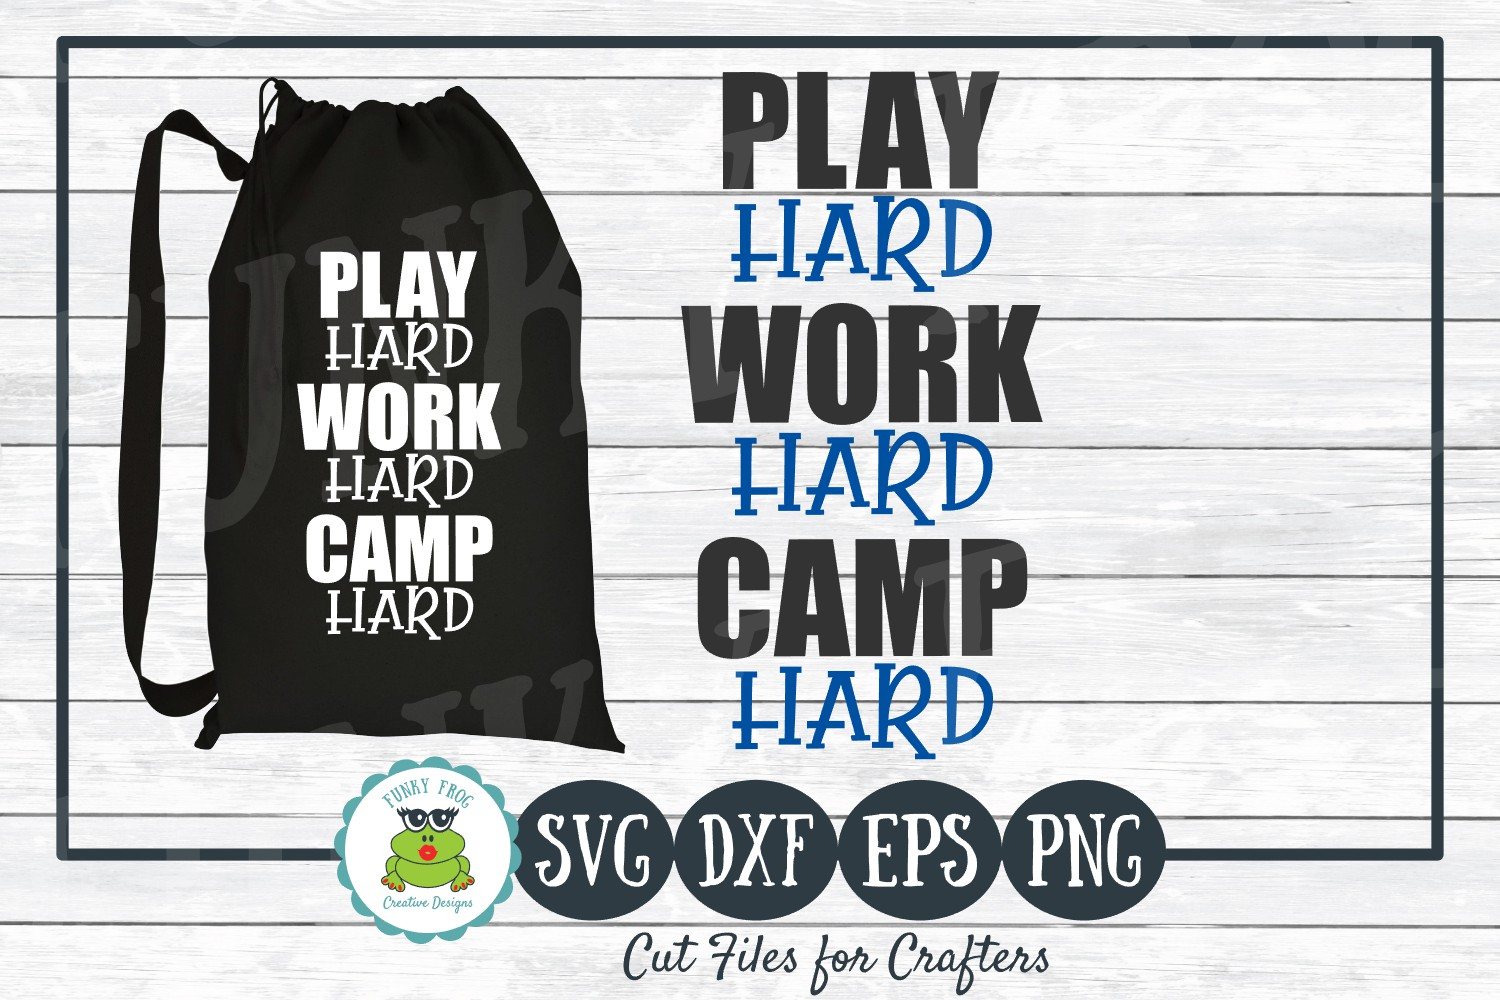 Play Hard Work Hard Camp Hard, SVG Cut File for Crafters example image 1